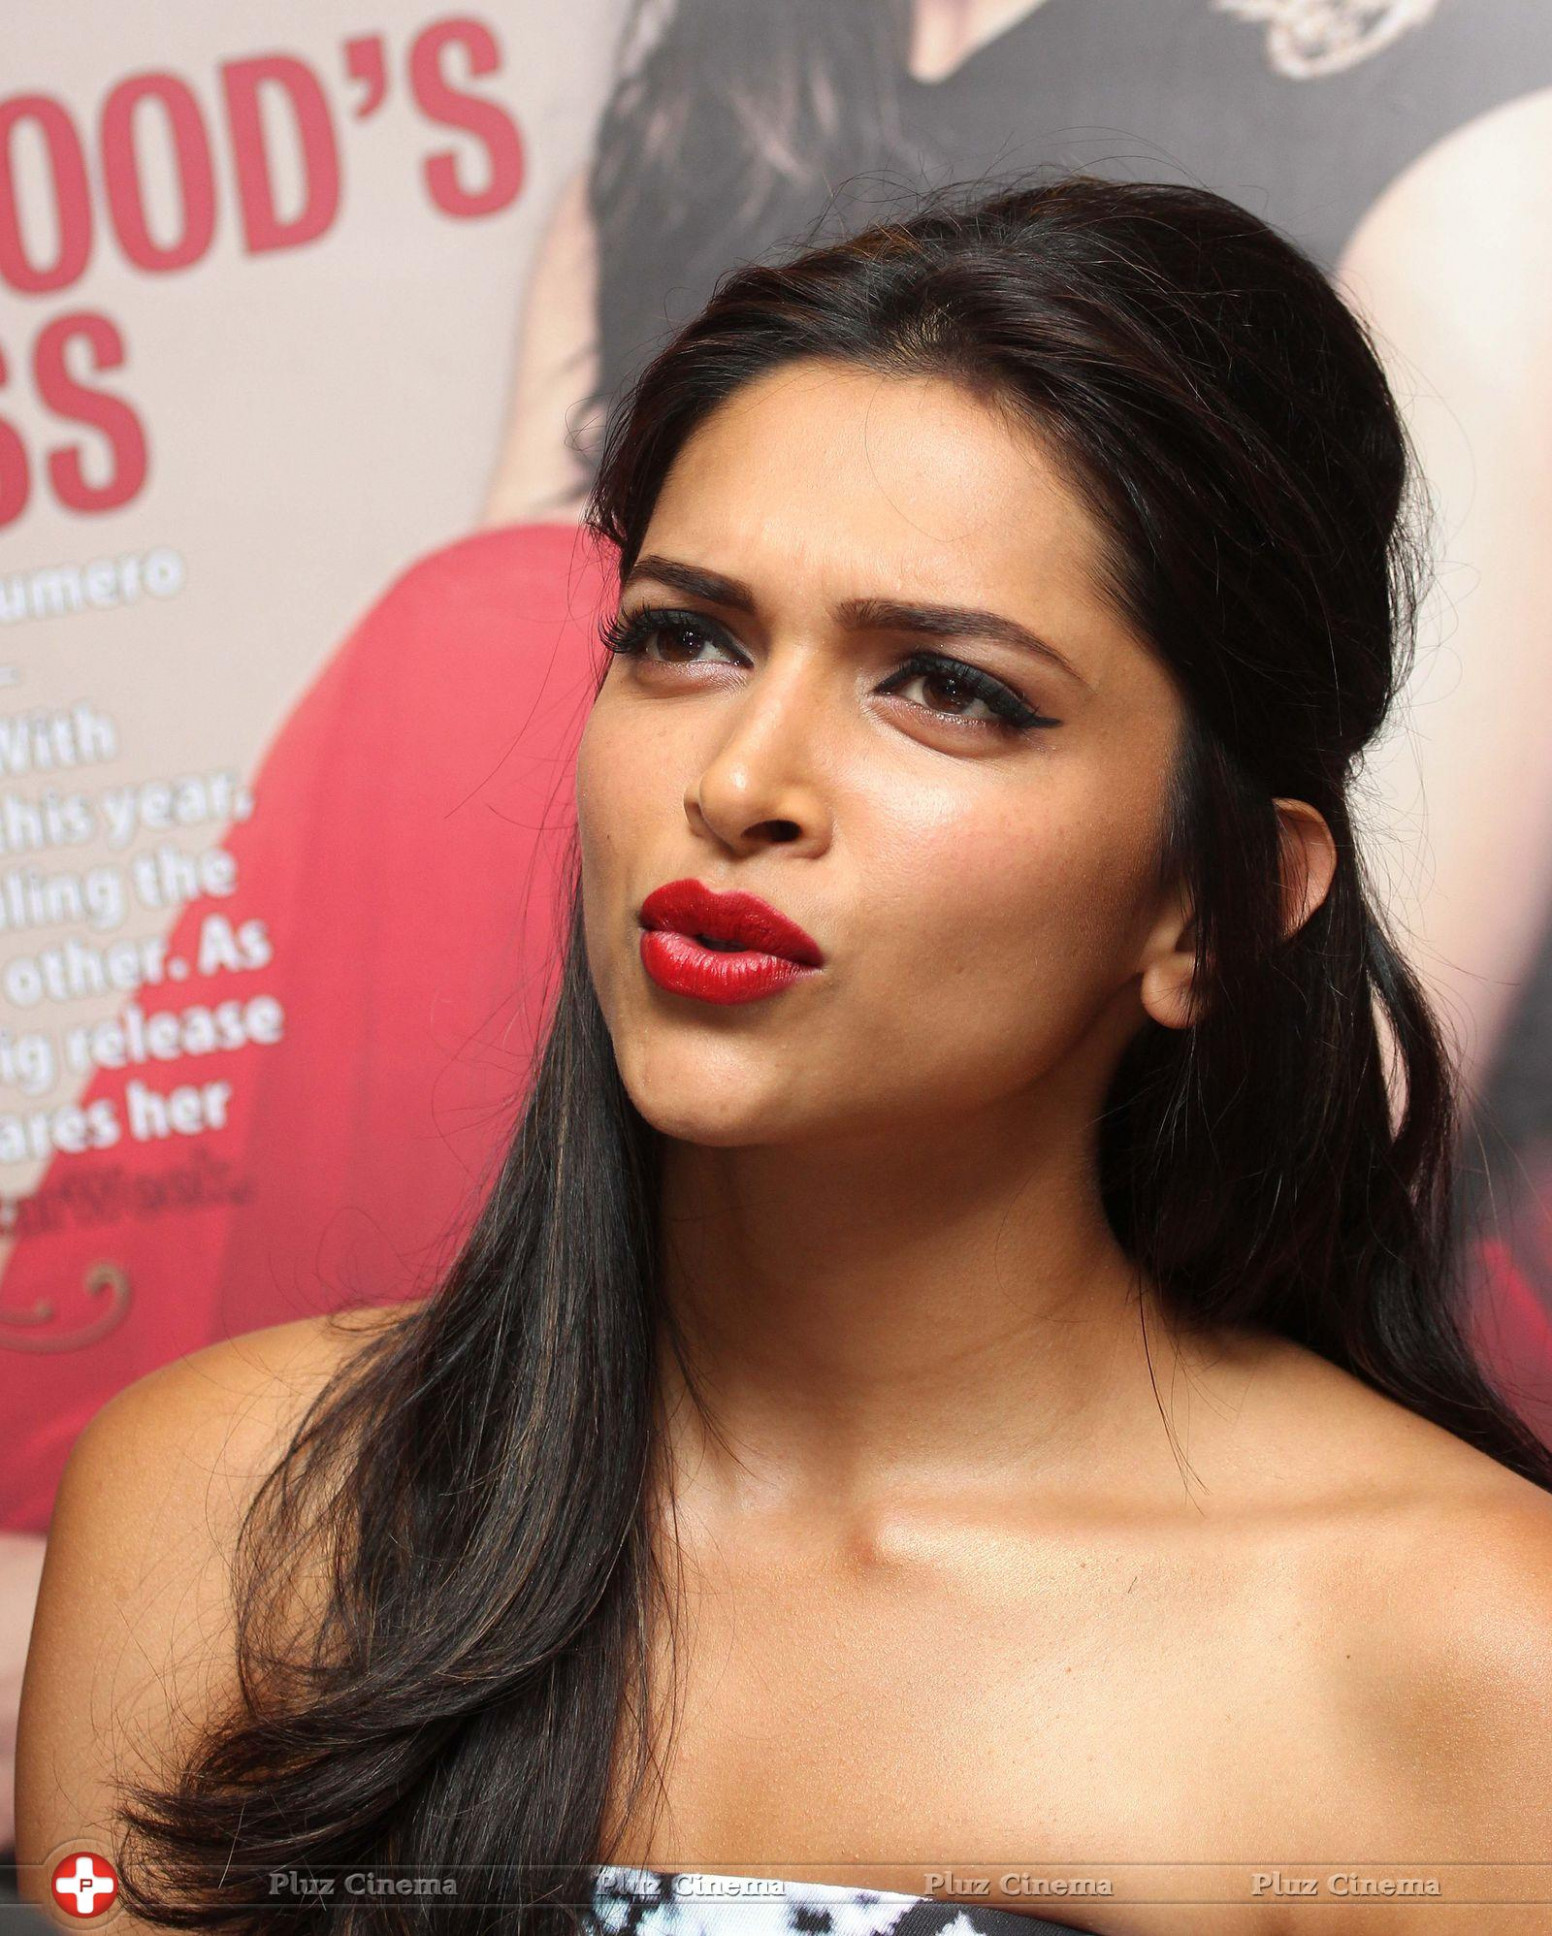 Bollywood Stars Makeup Tips - Mugeek Vidalondon